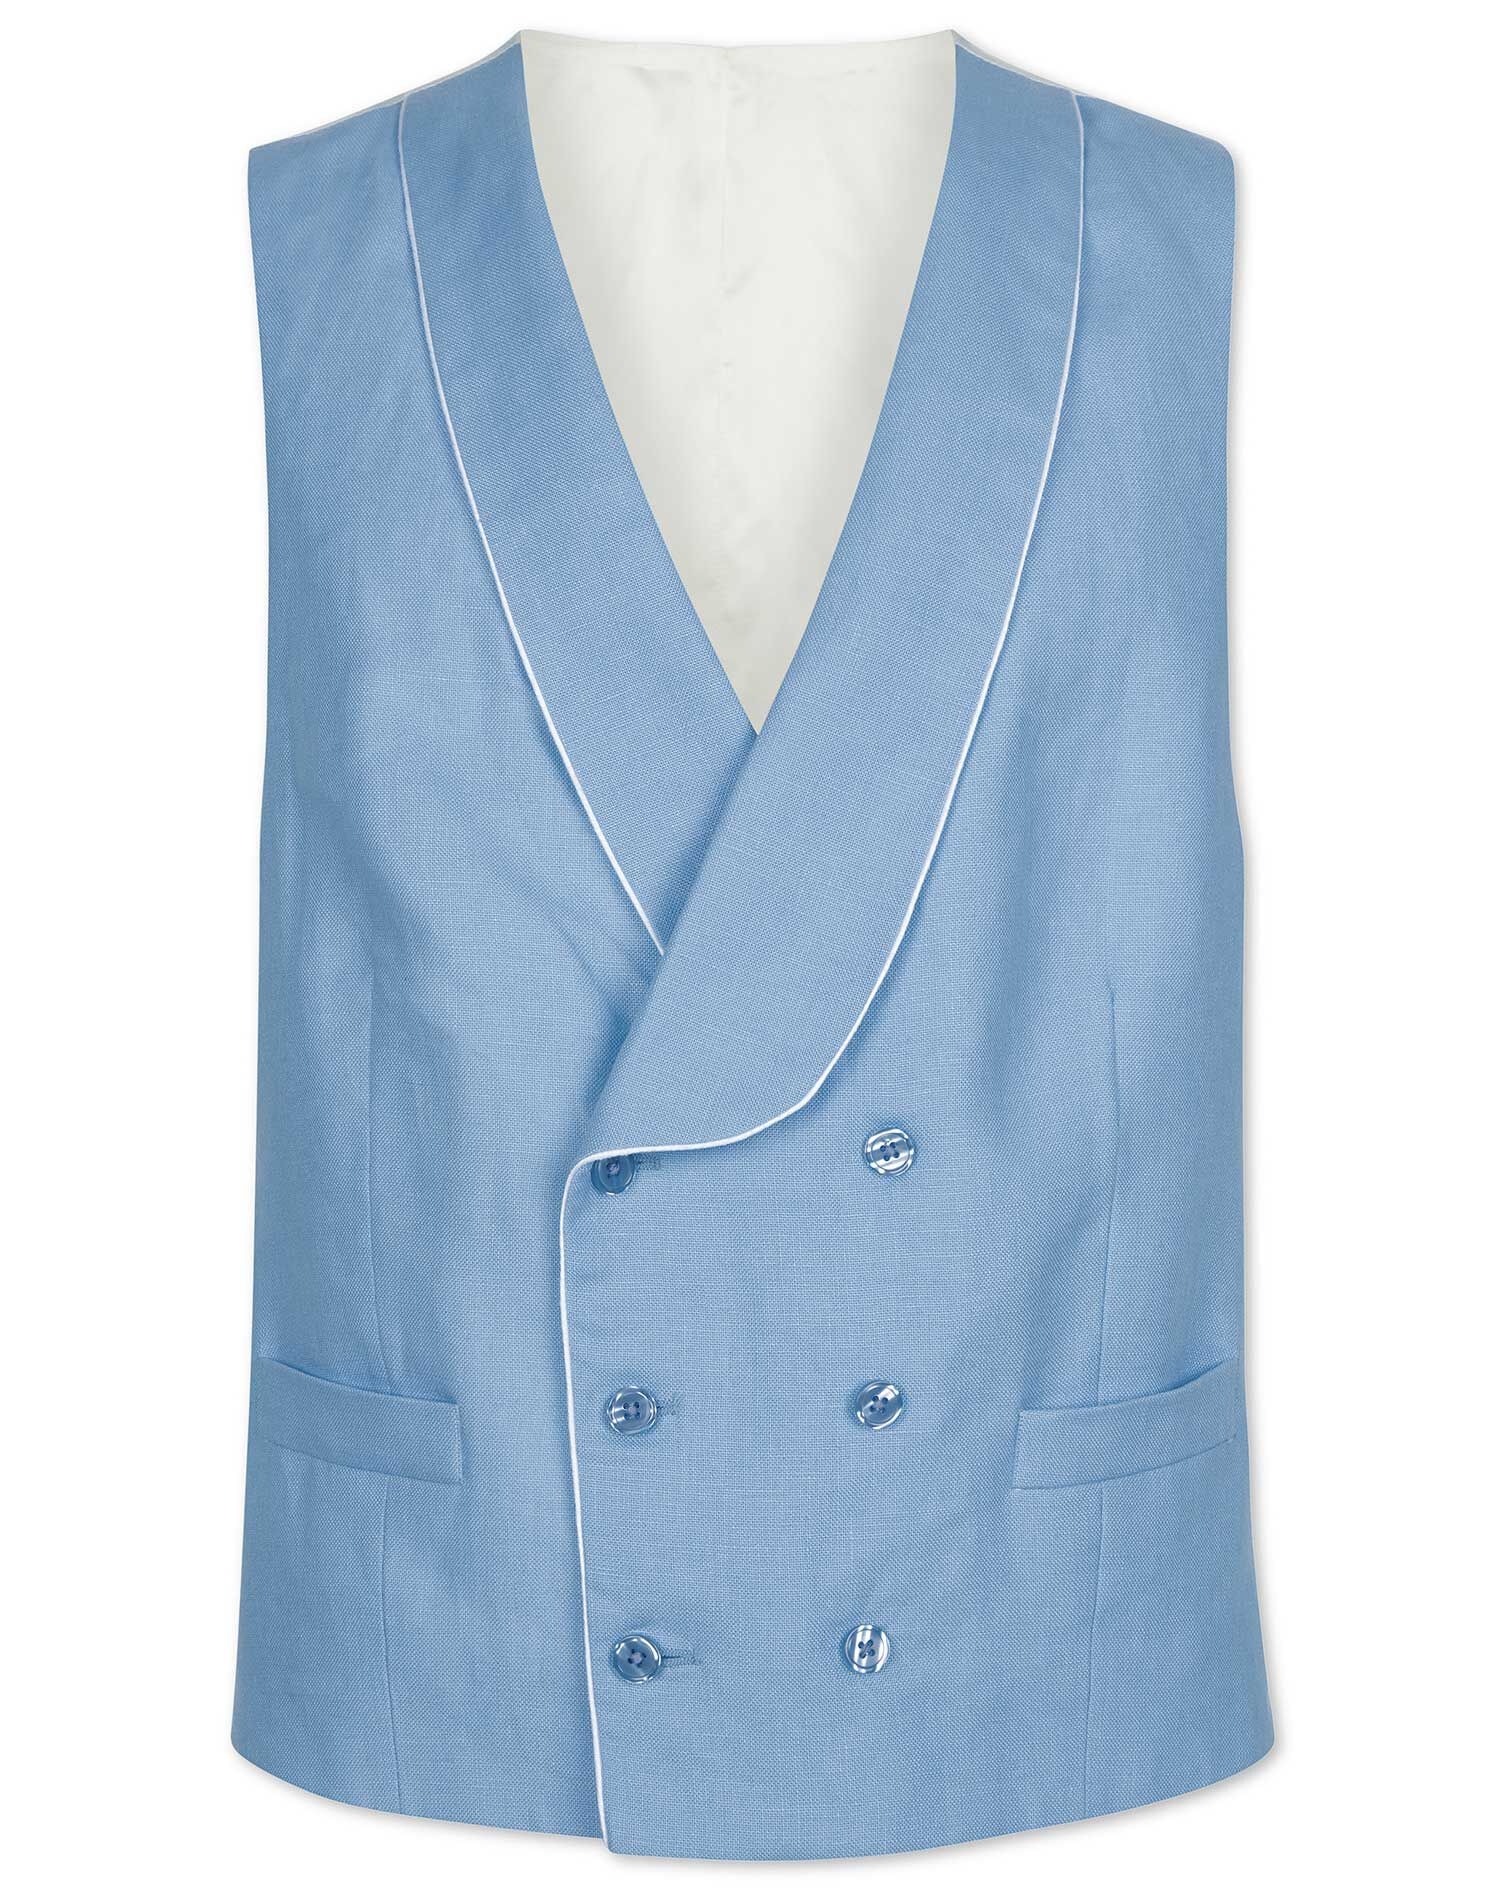 1920s Style Mens Vests Blue Morning Suit Linen Waistcoat Size w48 by Charles Tyrwhitt £140.00 AT vintagedancer.com